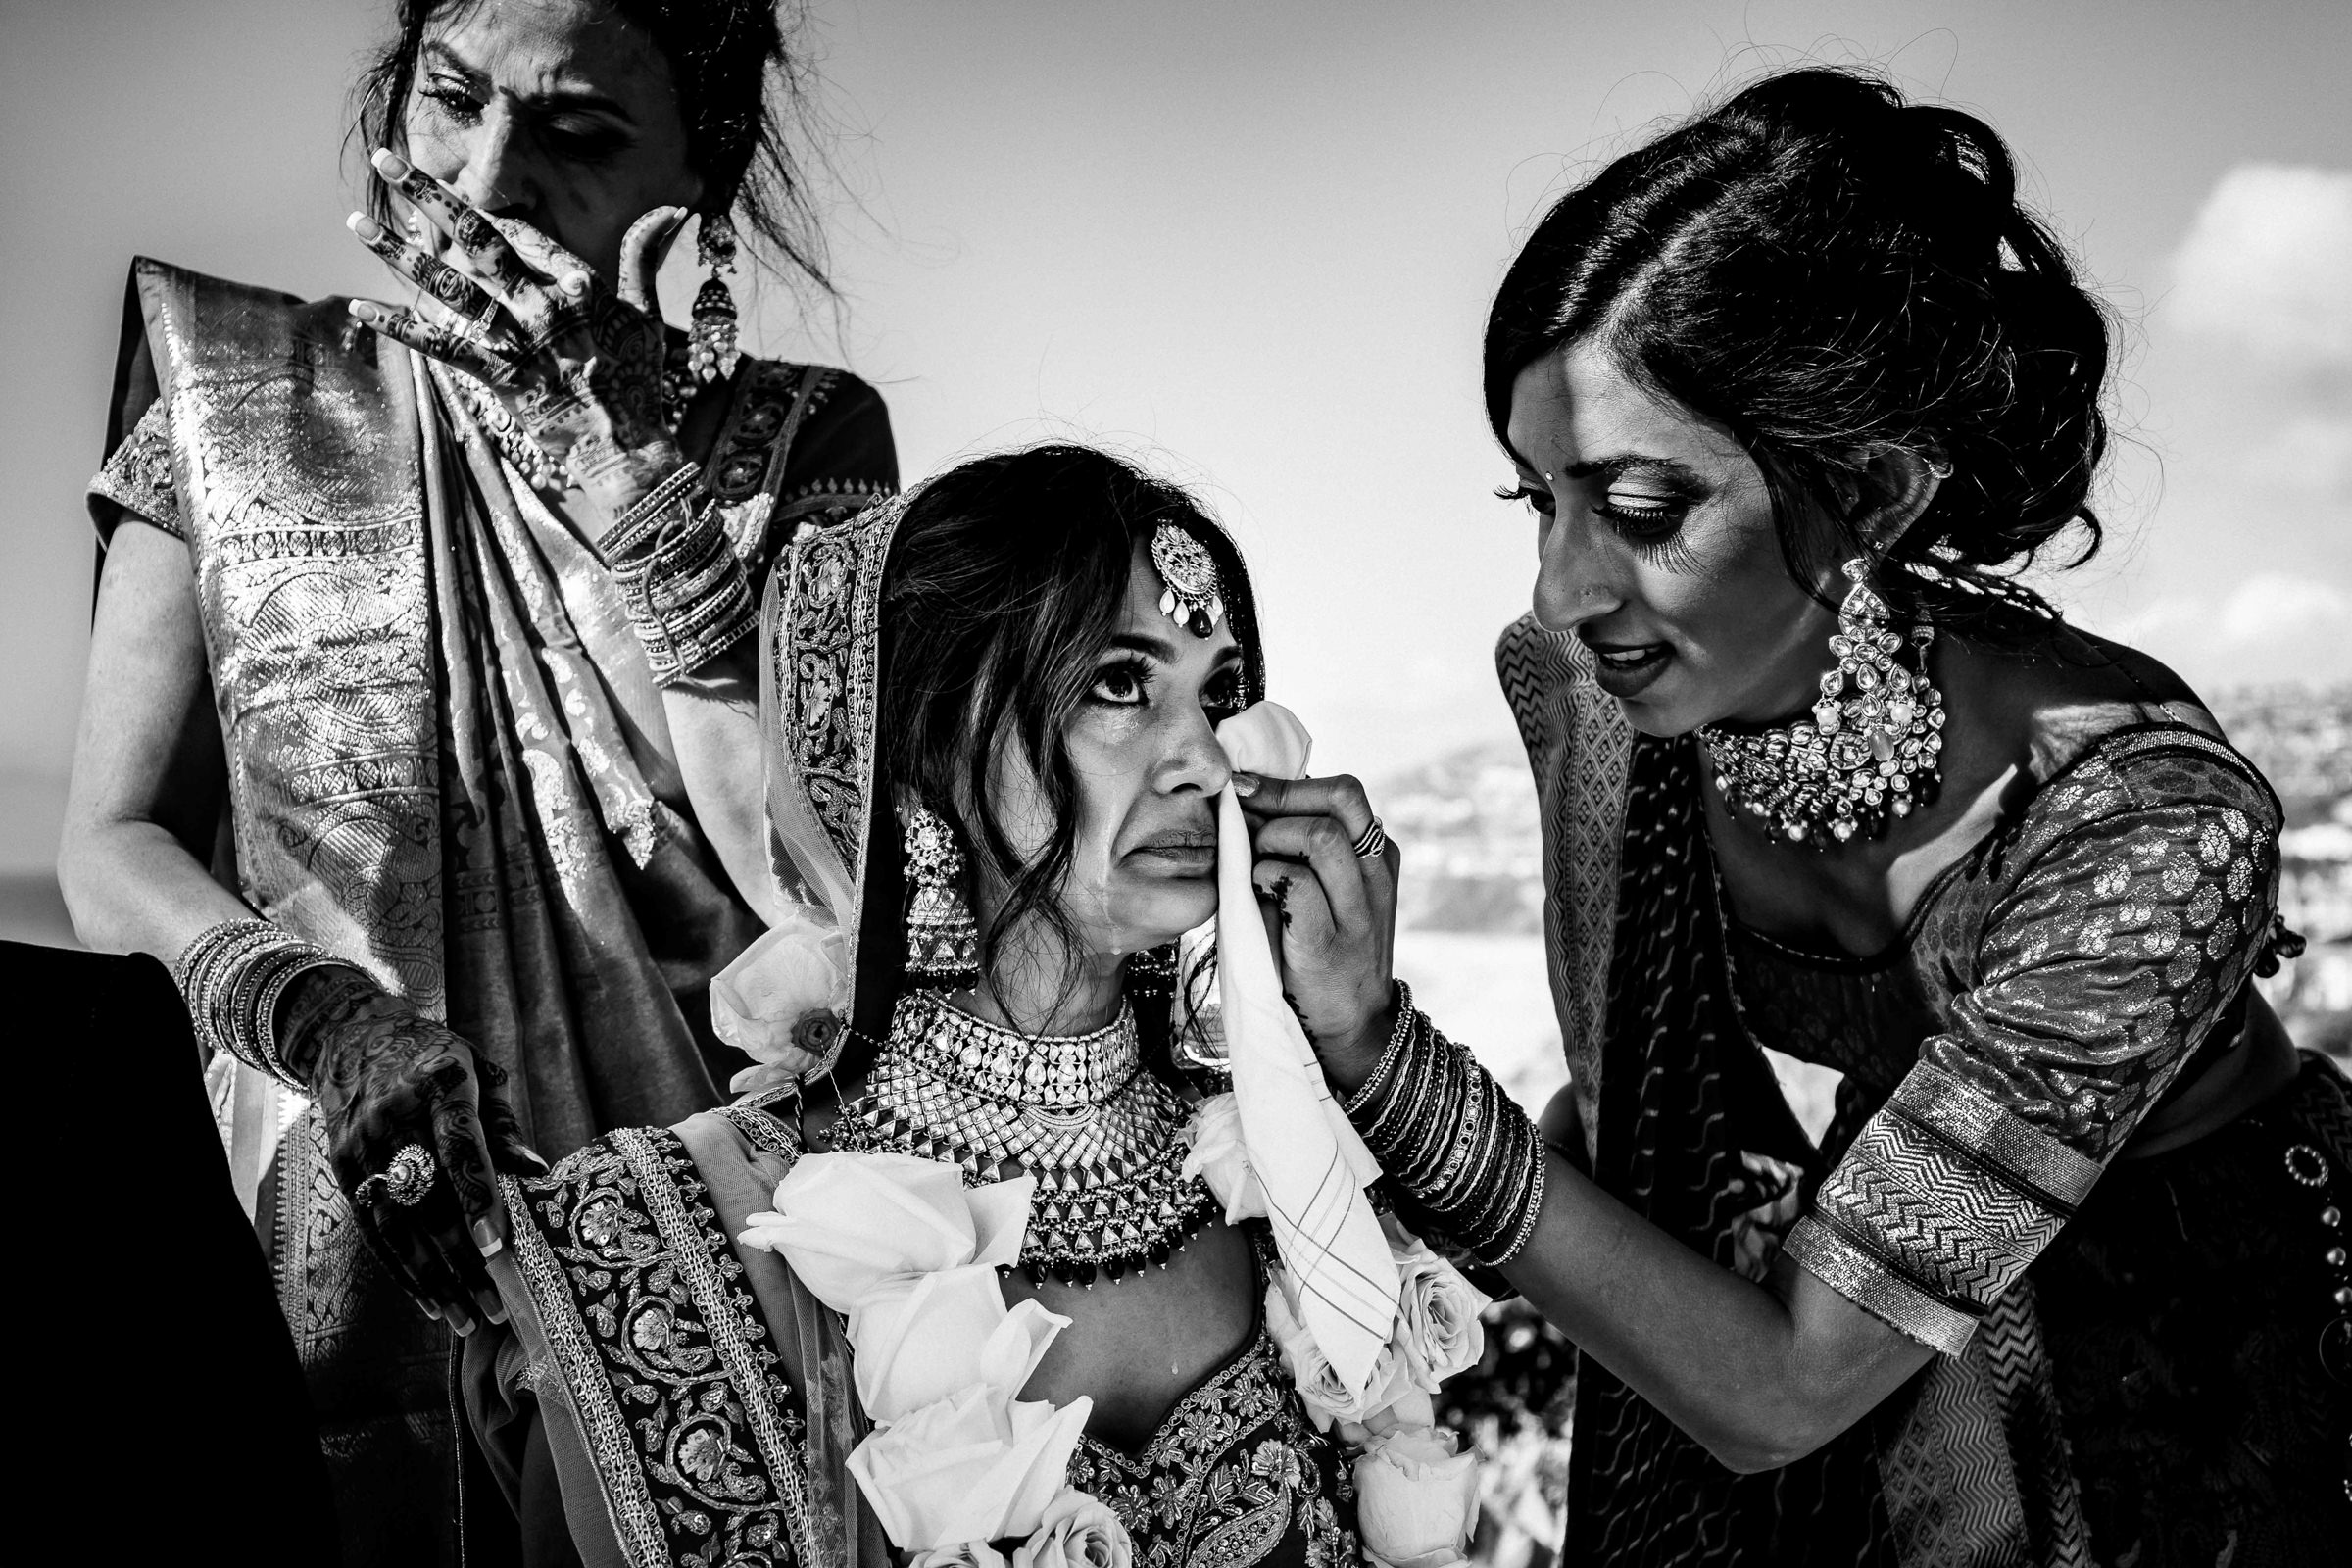 Wiping a tear for the Indian bride - photo by M. Hart - Los Angeles photographer